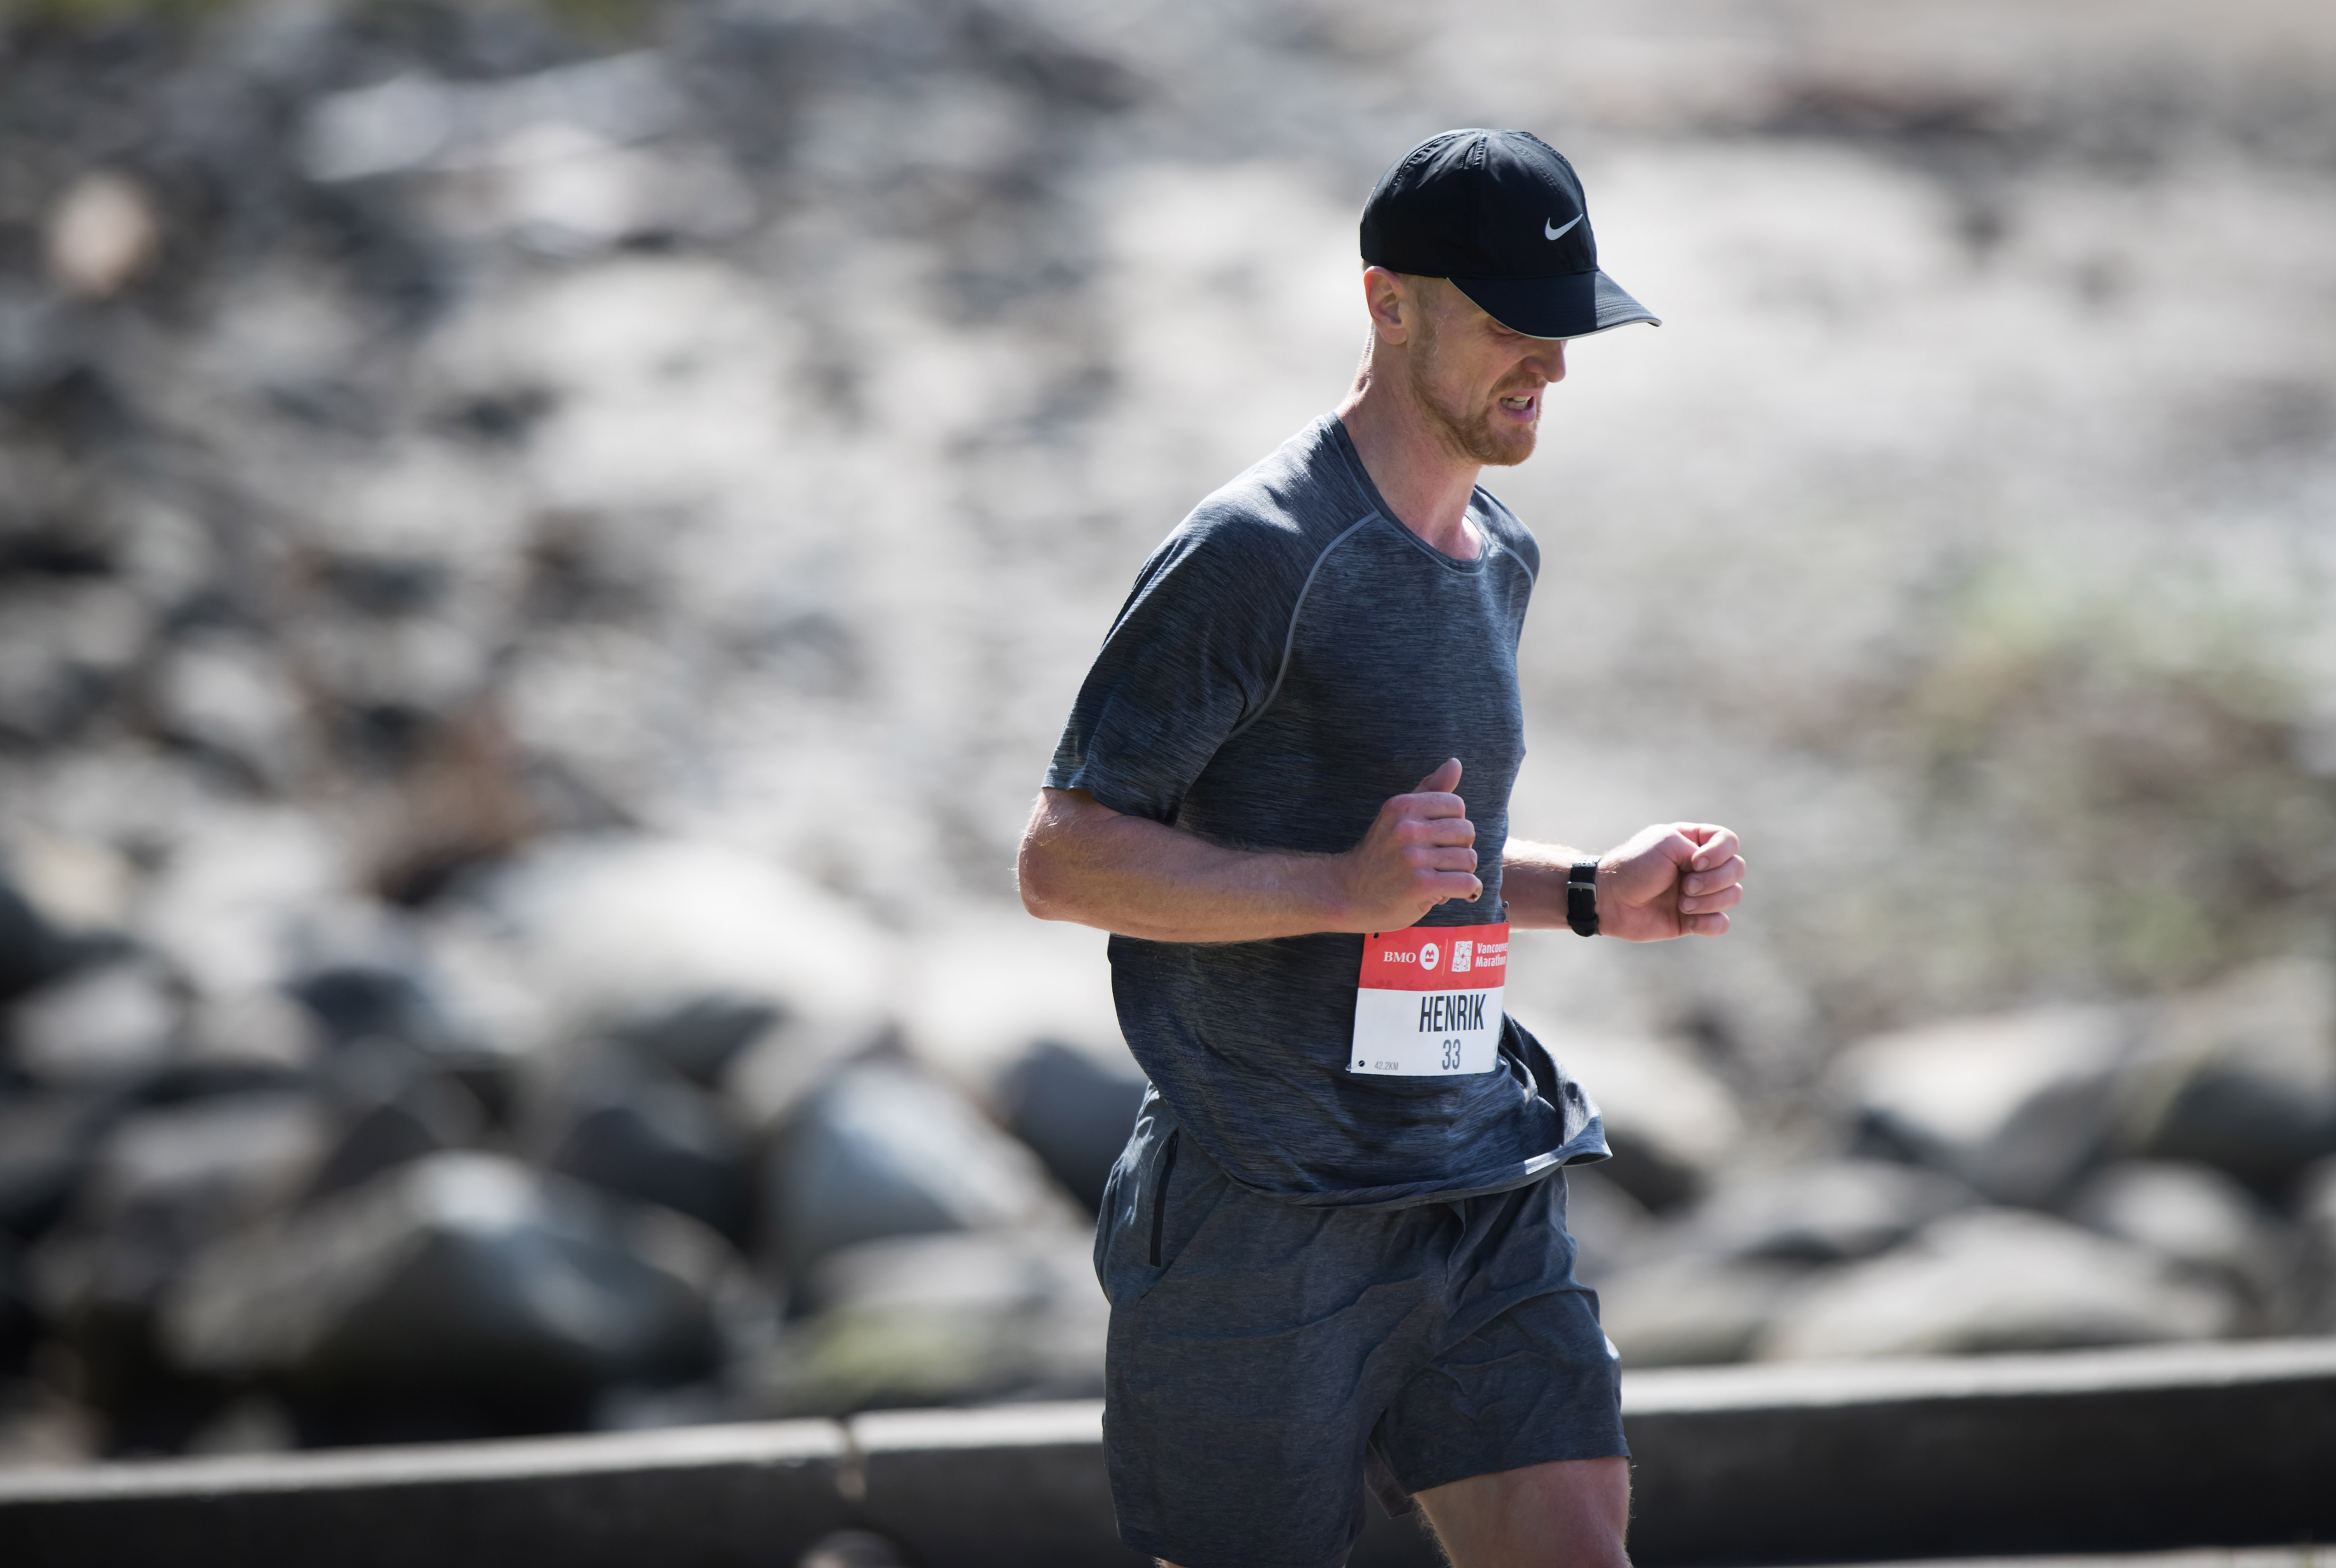 Henrik Sedin finishes strong in the last KMs of the BMO Vancouver Marathon. Photo: Darryl Dyck / RUNVAN®